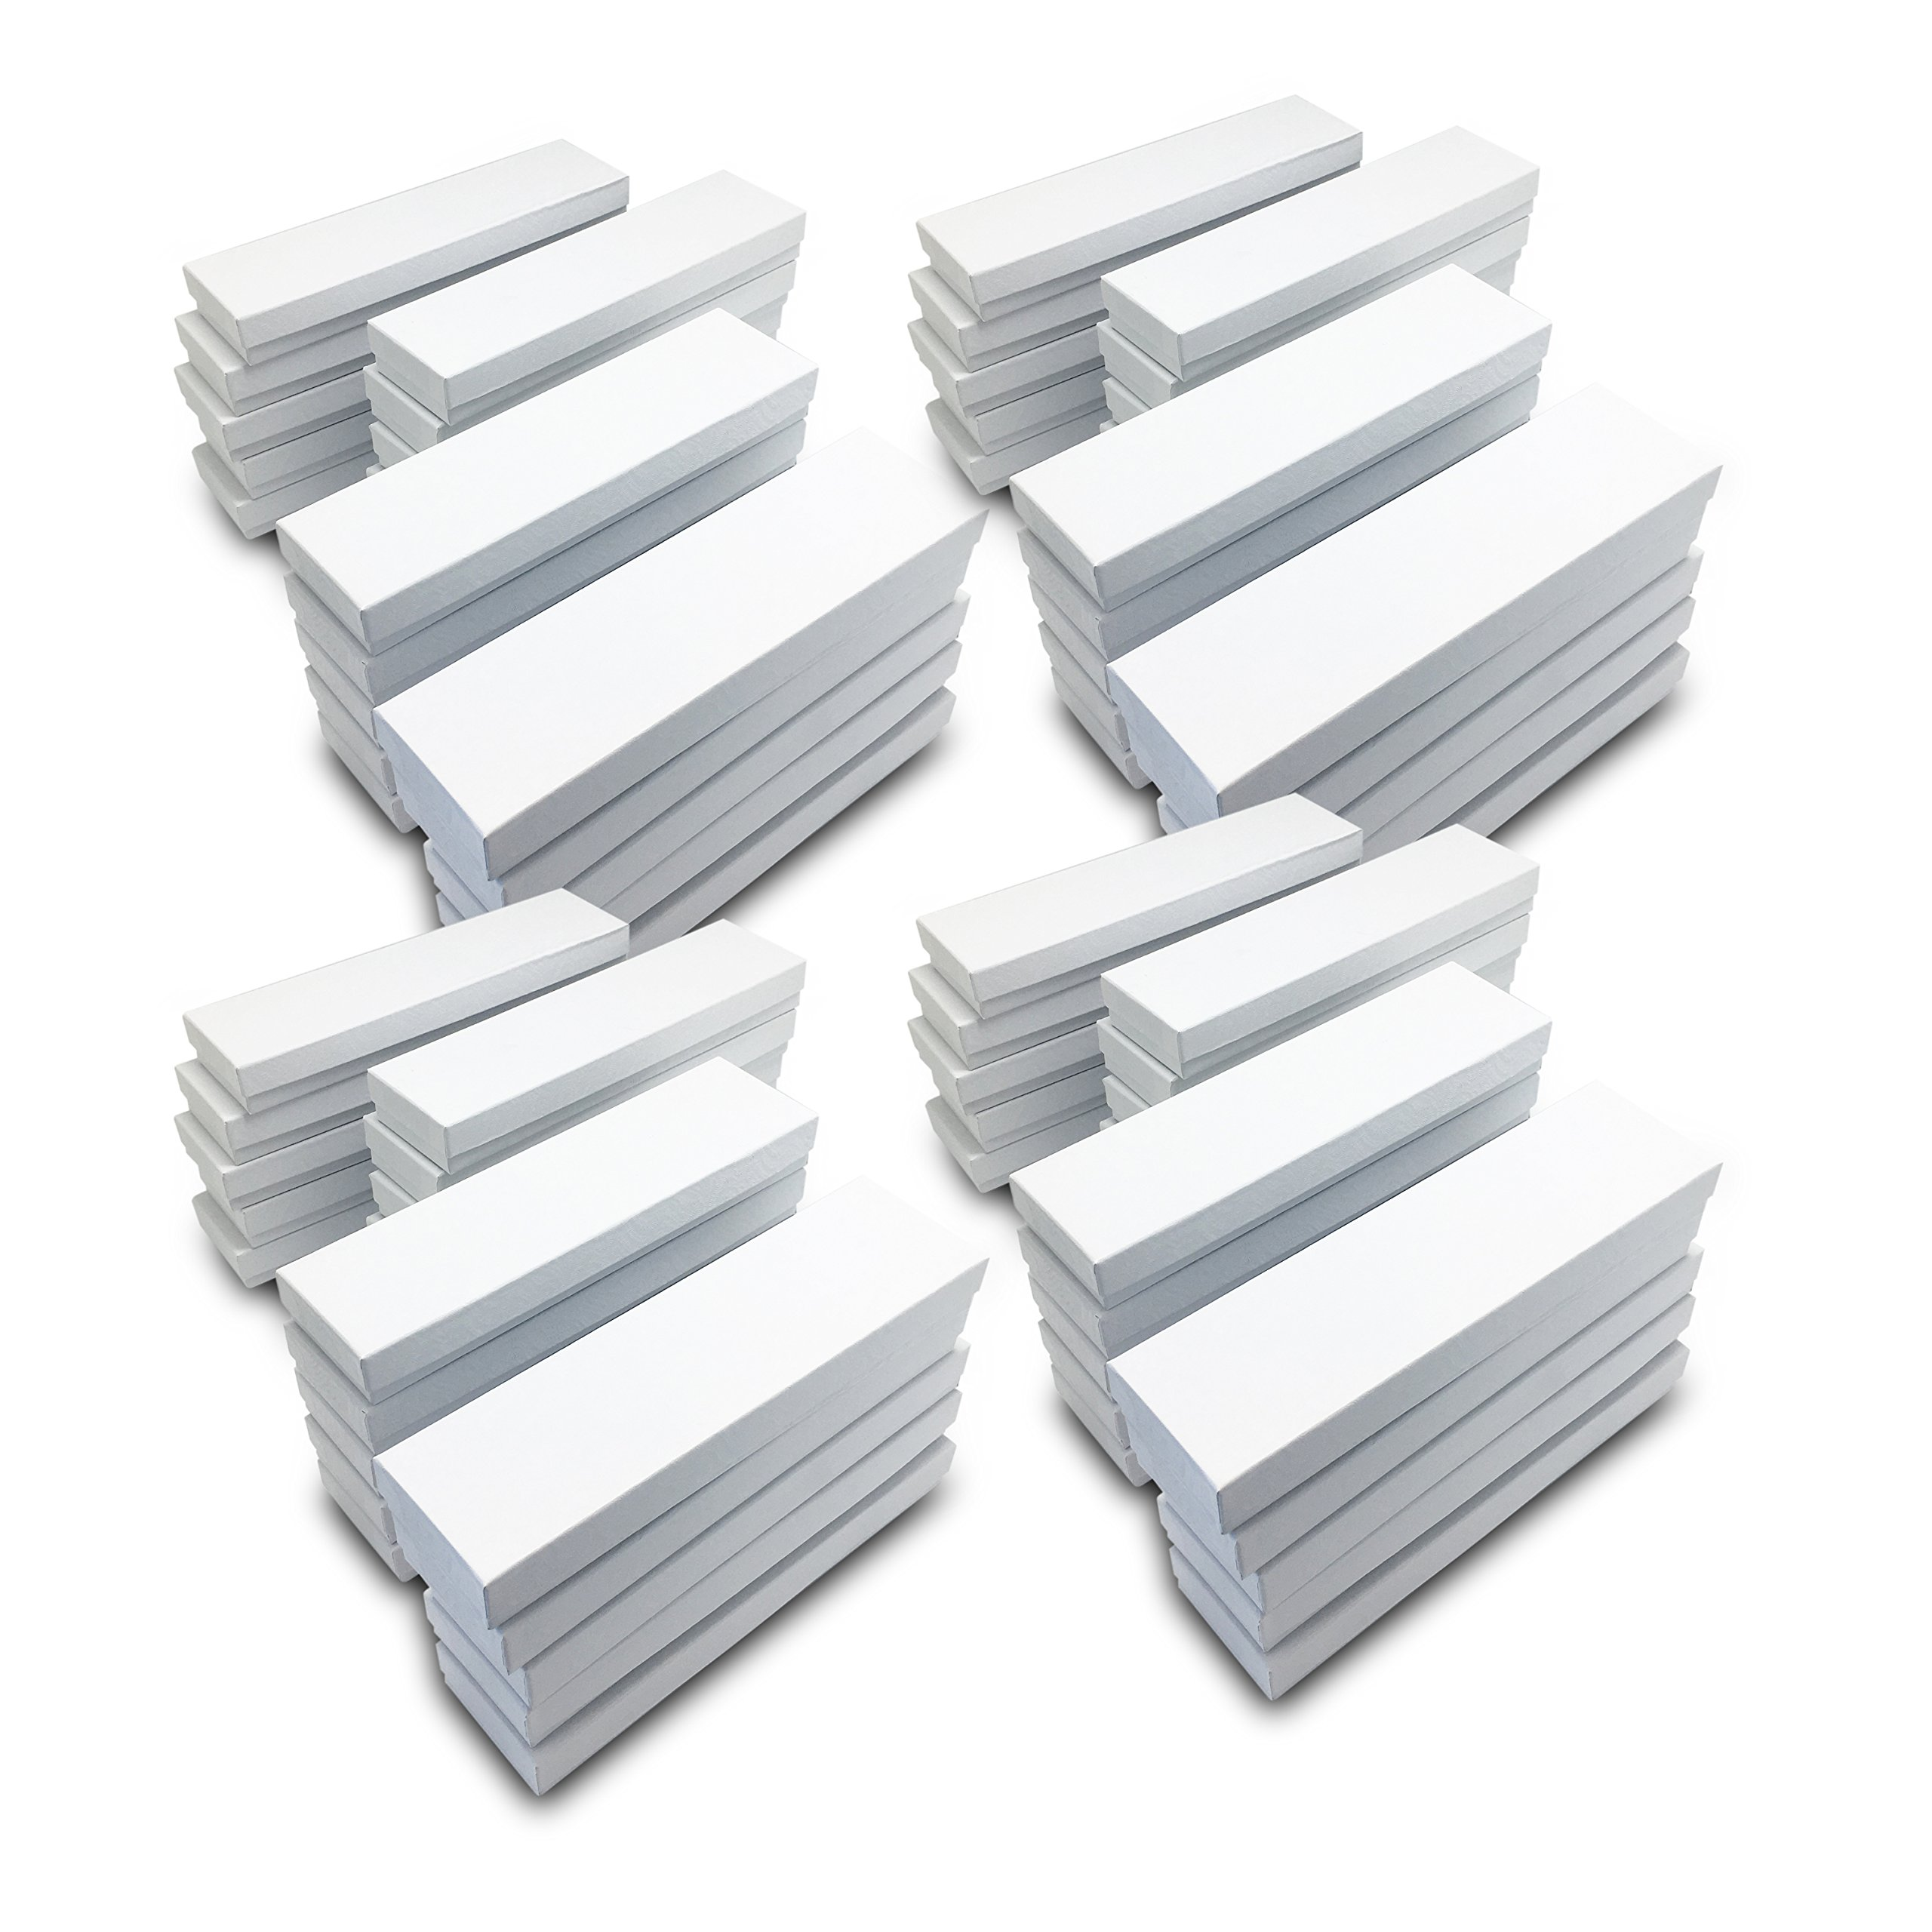 The Display Guys~ Pack of 100 Cotton Filled Cardboard Paper White Jewelry Box Gift Case -White swirl (8x2x1 inches #82) by The Display Guys